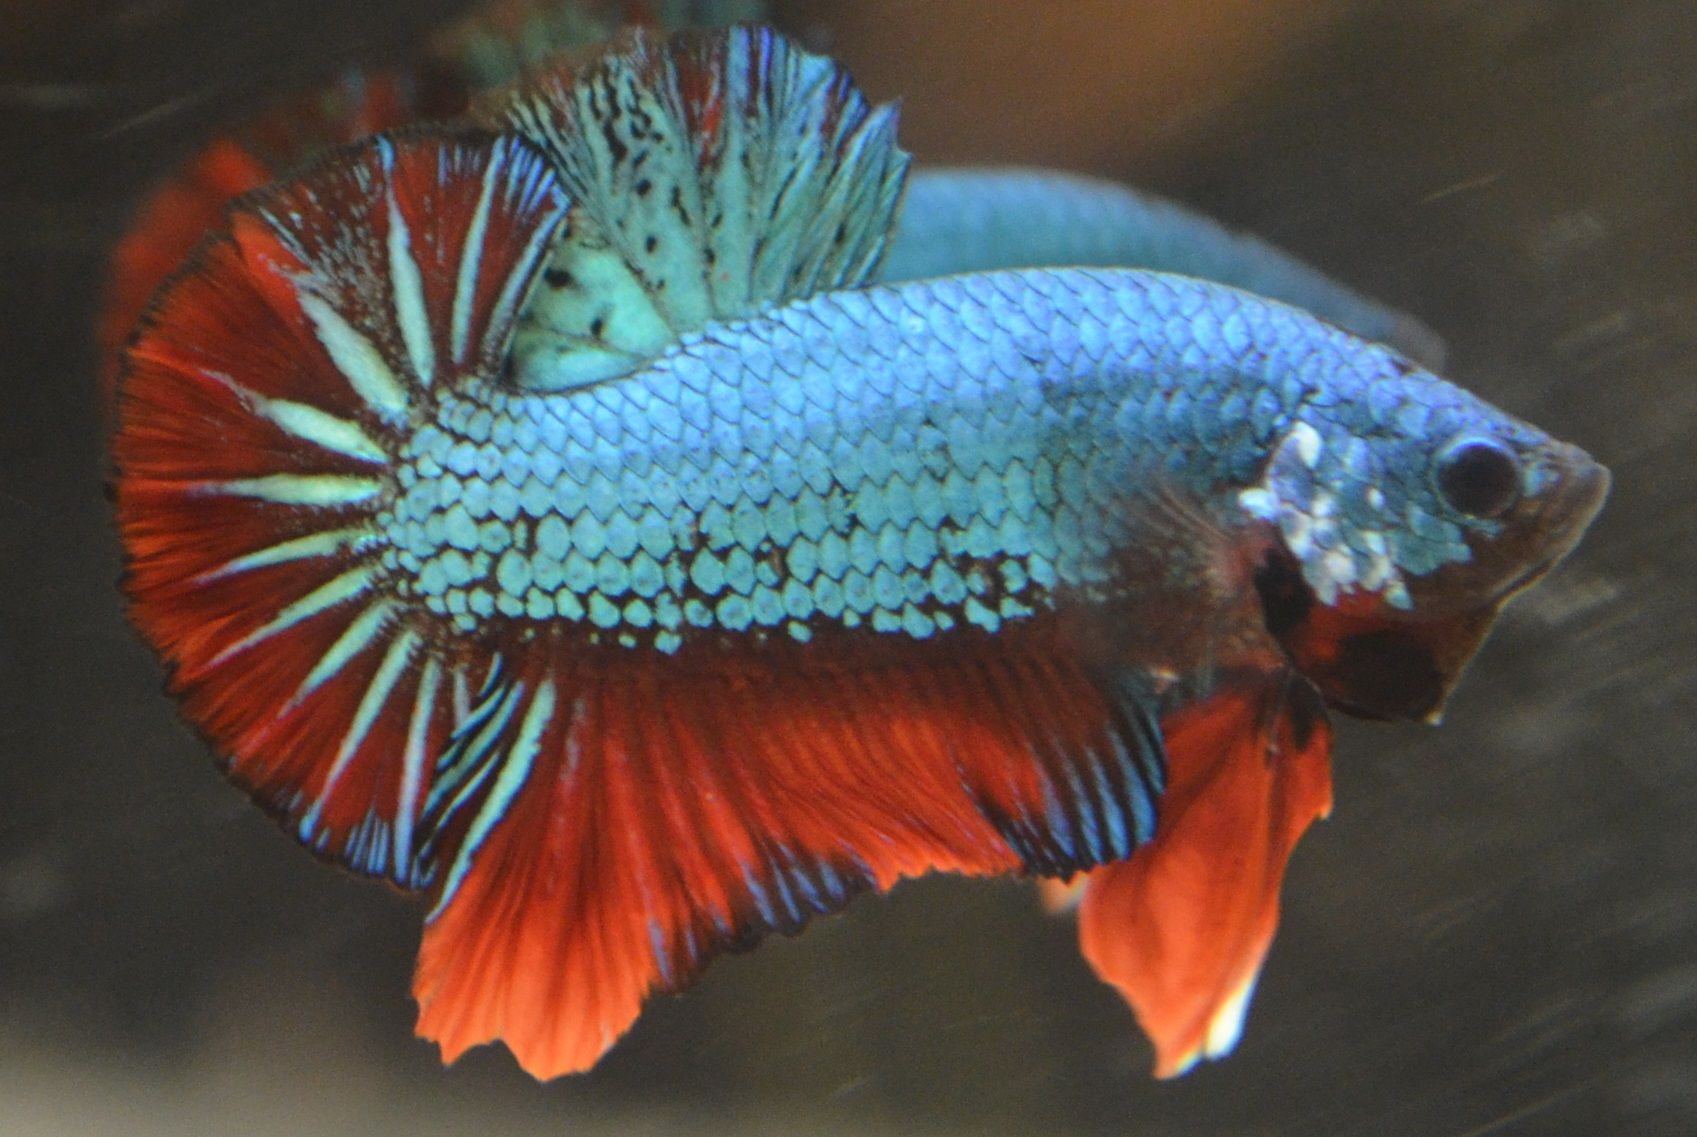 Live betta fish awesome green dragon male mirror dragon for Betta fish mirror